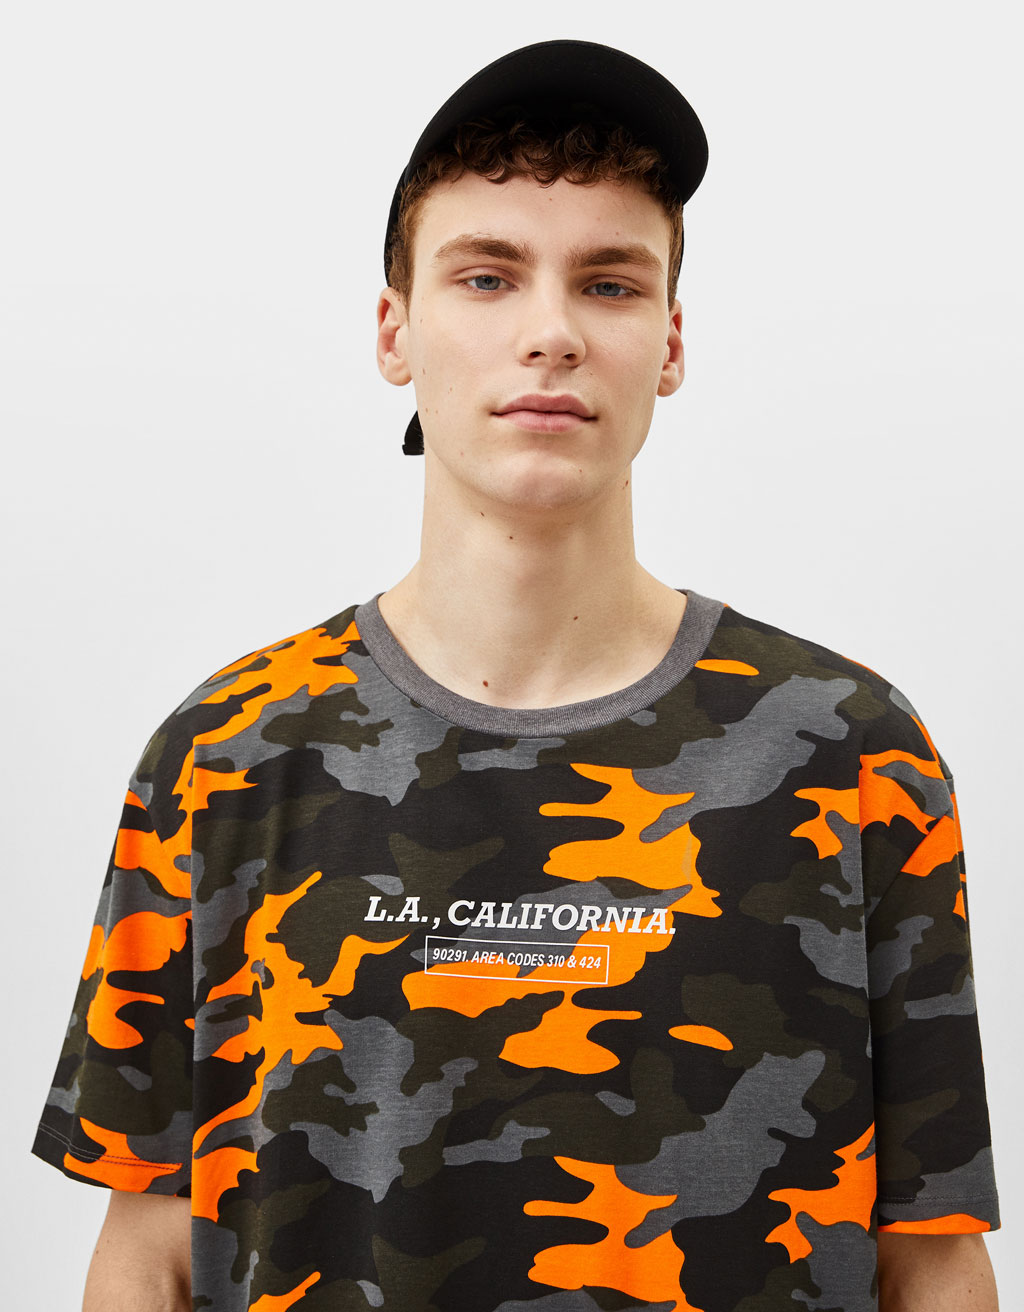 c278dd893 Men's T-Shirts - Spring Summer 2019 | Bershka